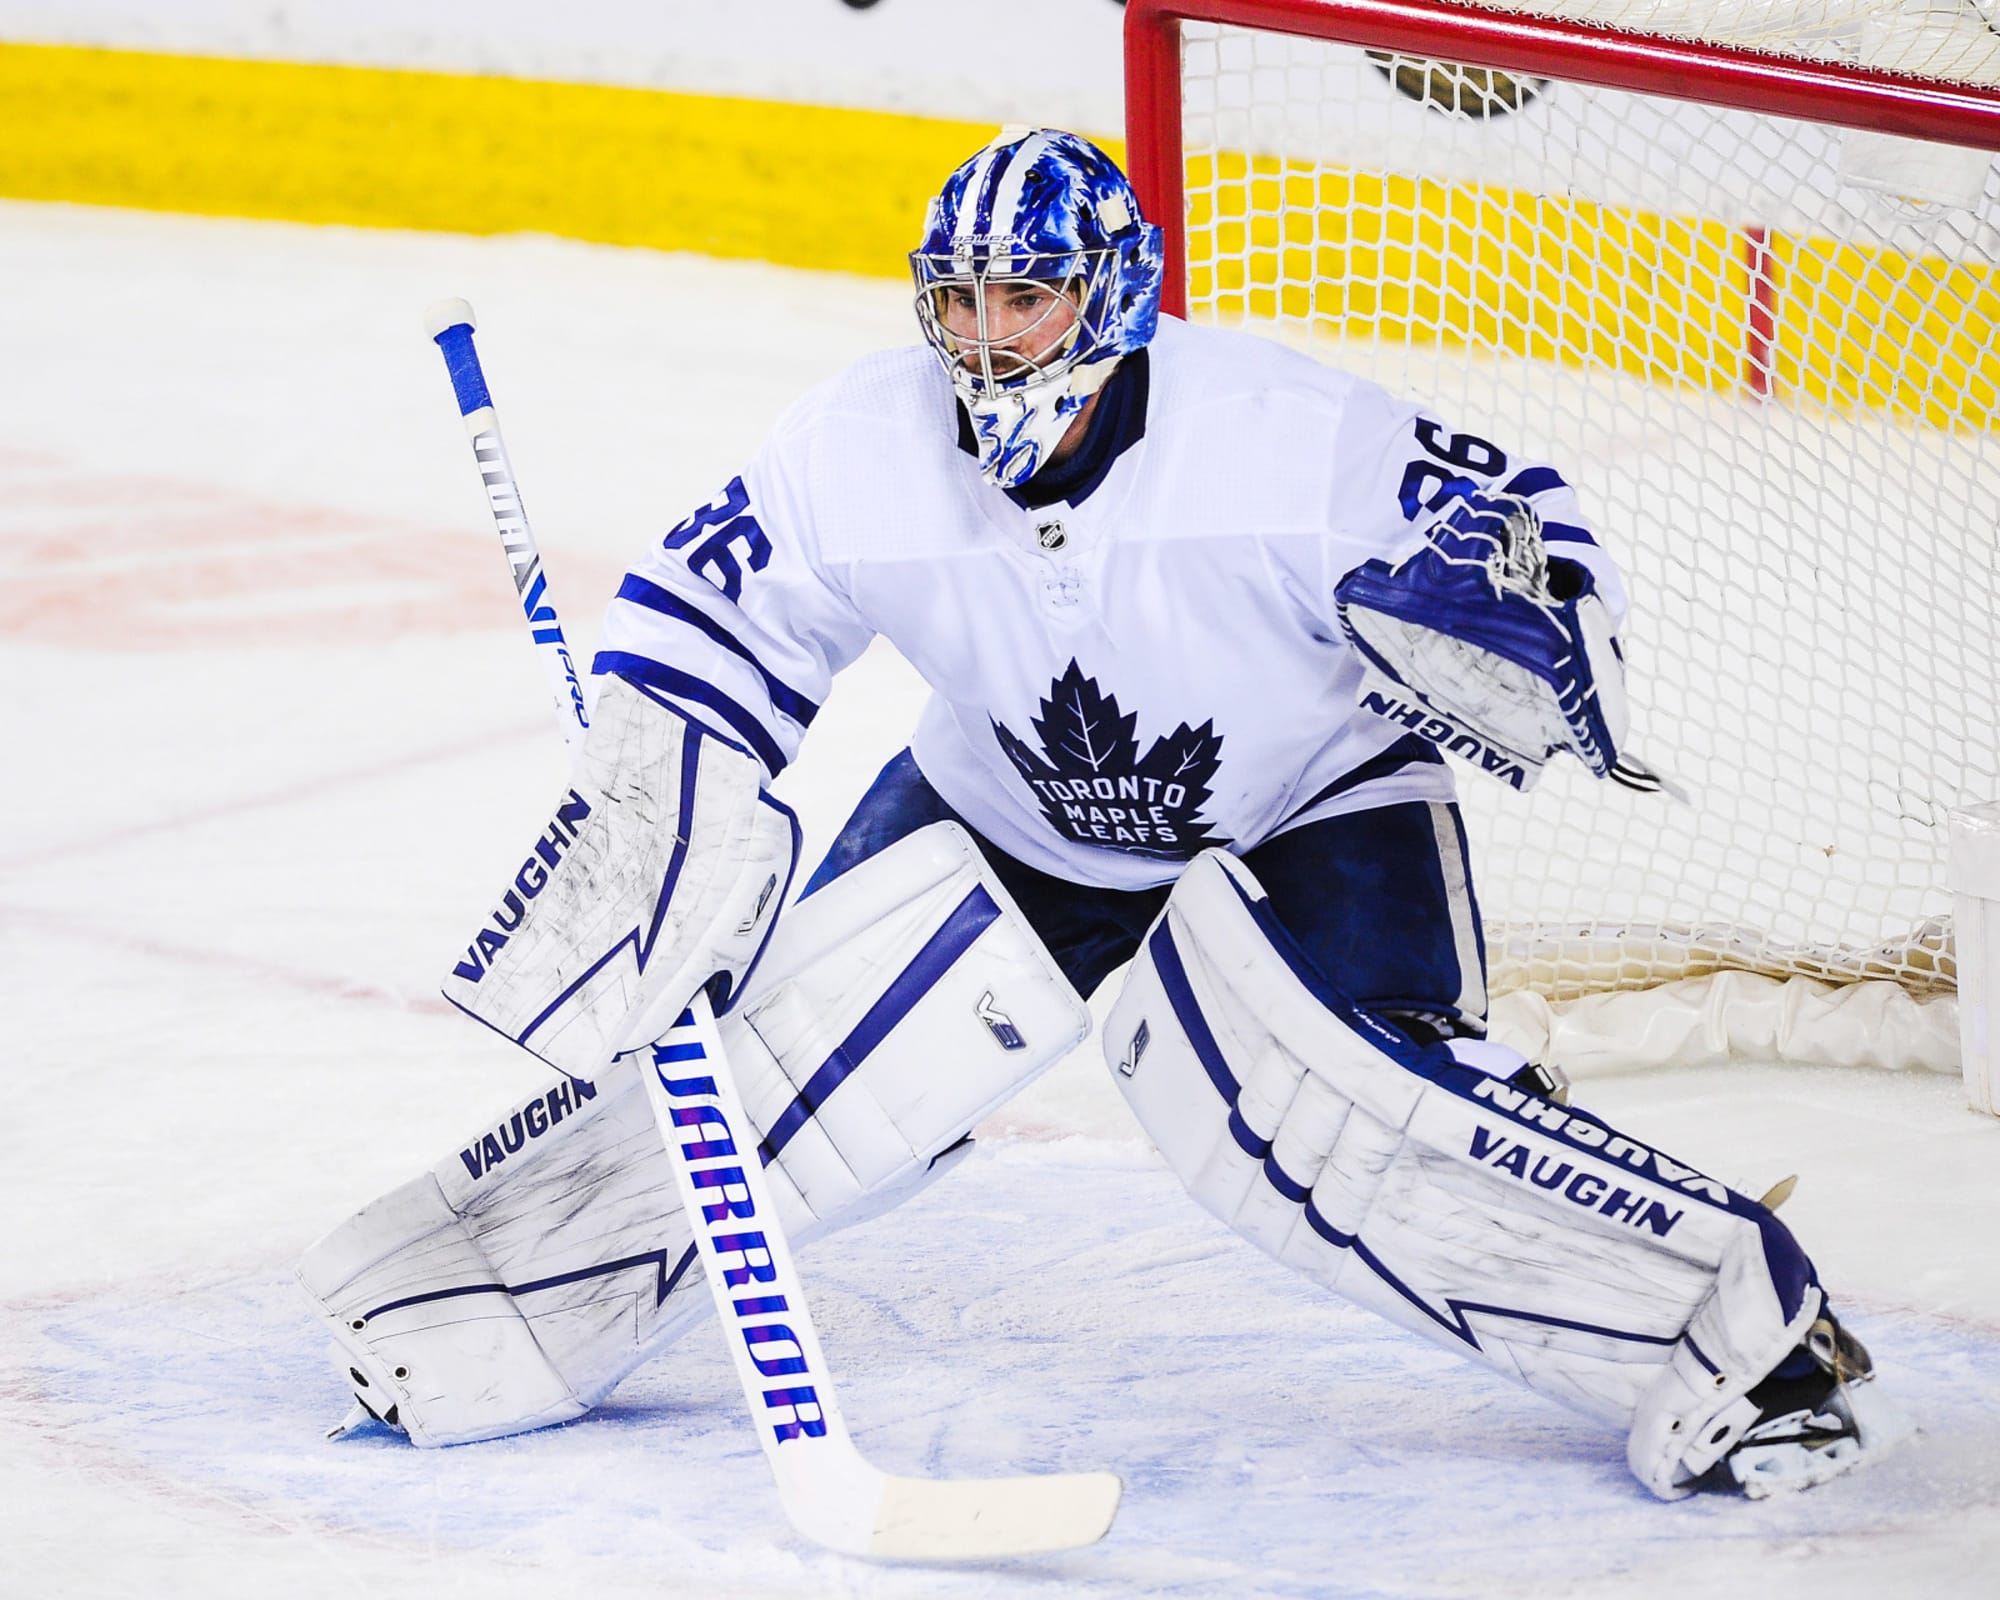 Maple Leafs More Impressive than Tampa Without Kucherov